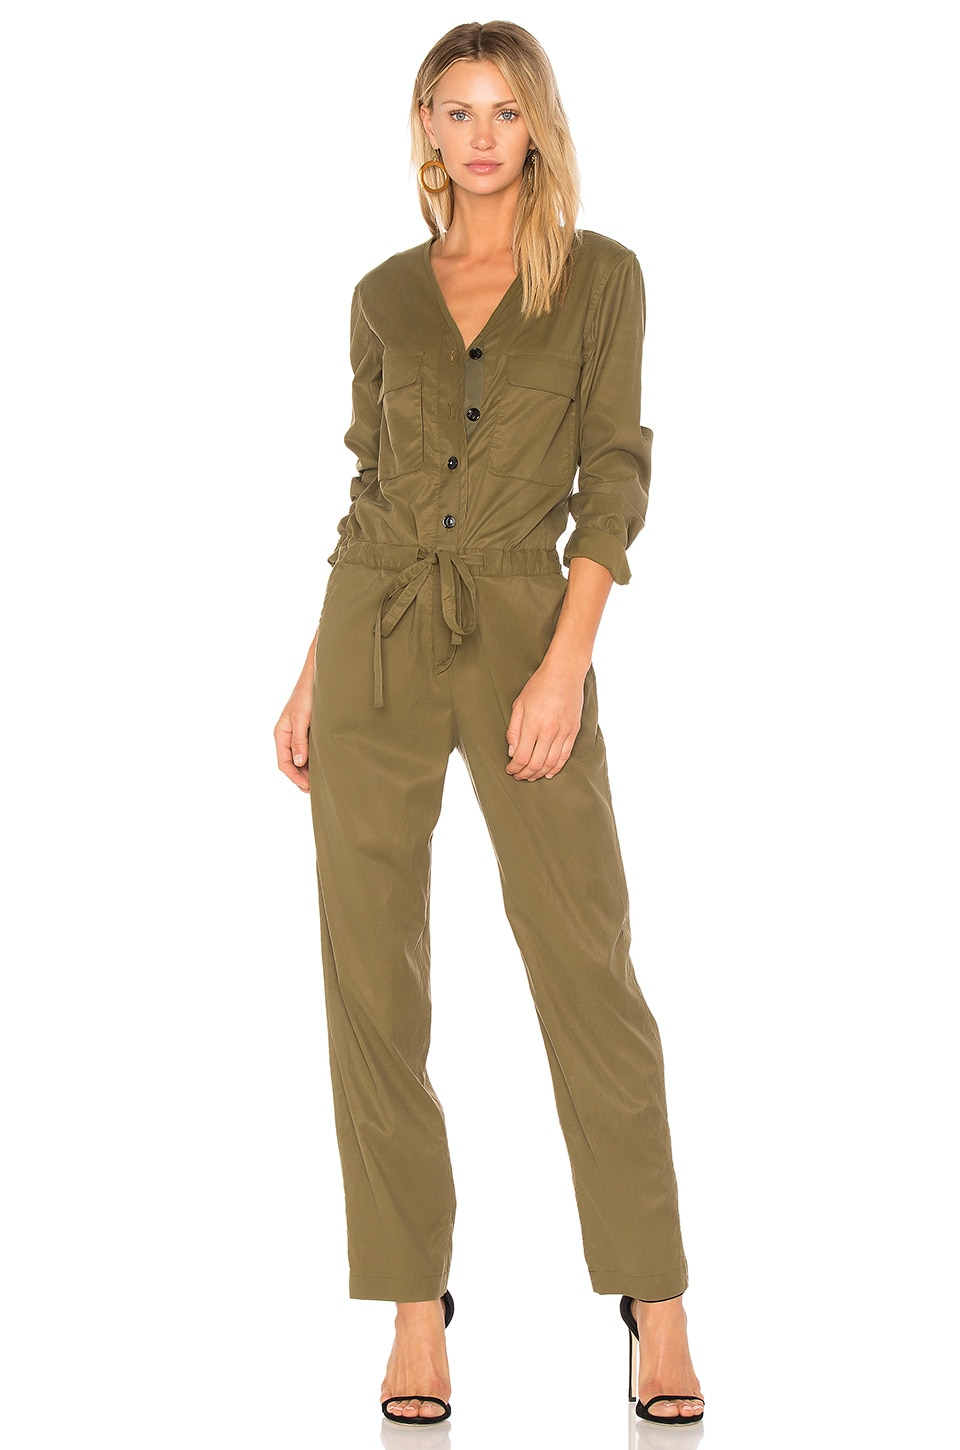 Malvern Jumpsuit by Rag & Bone